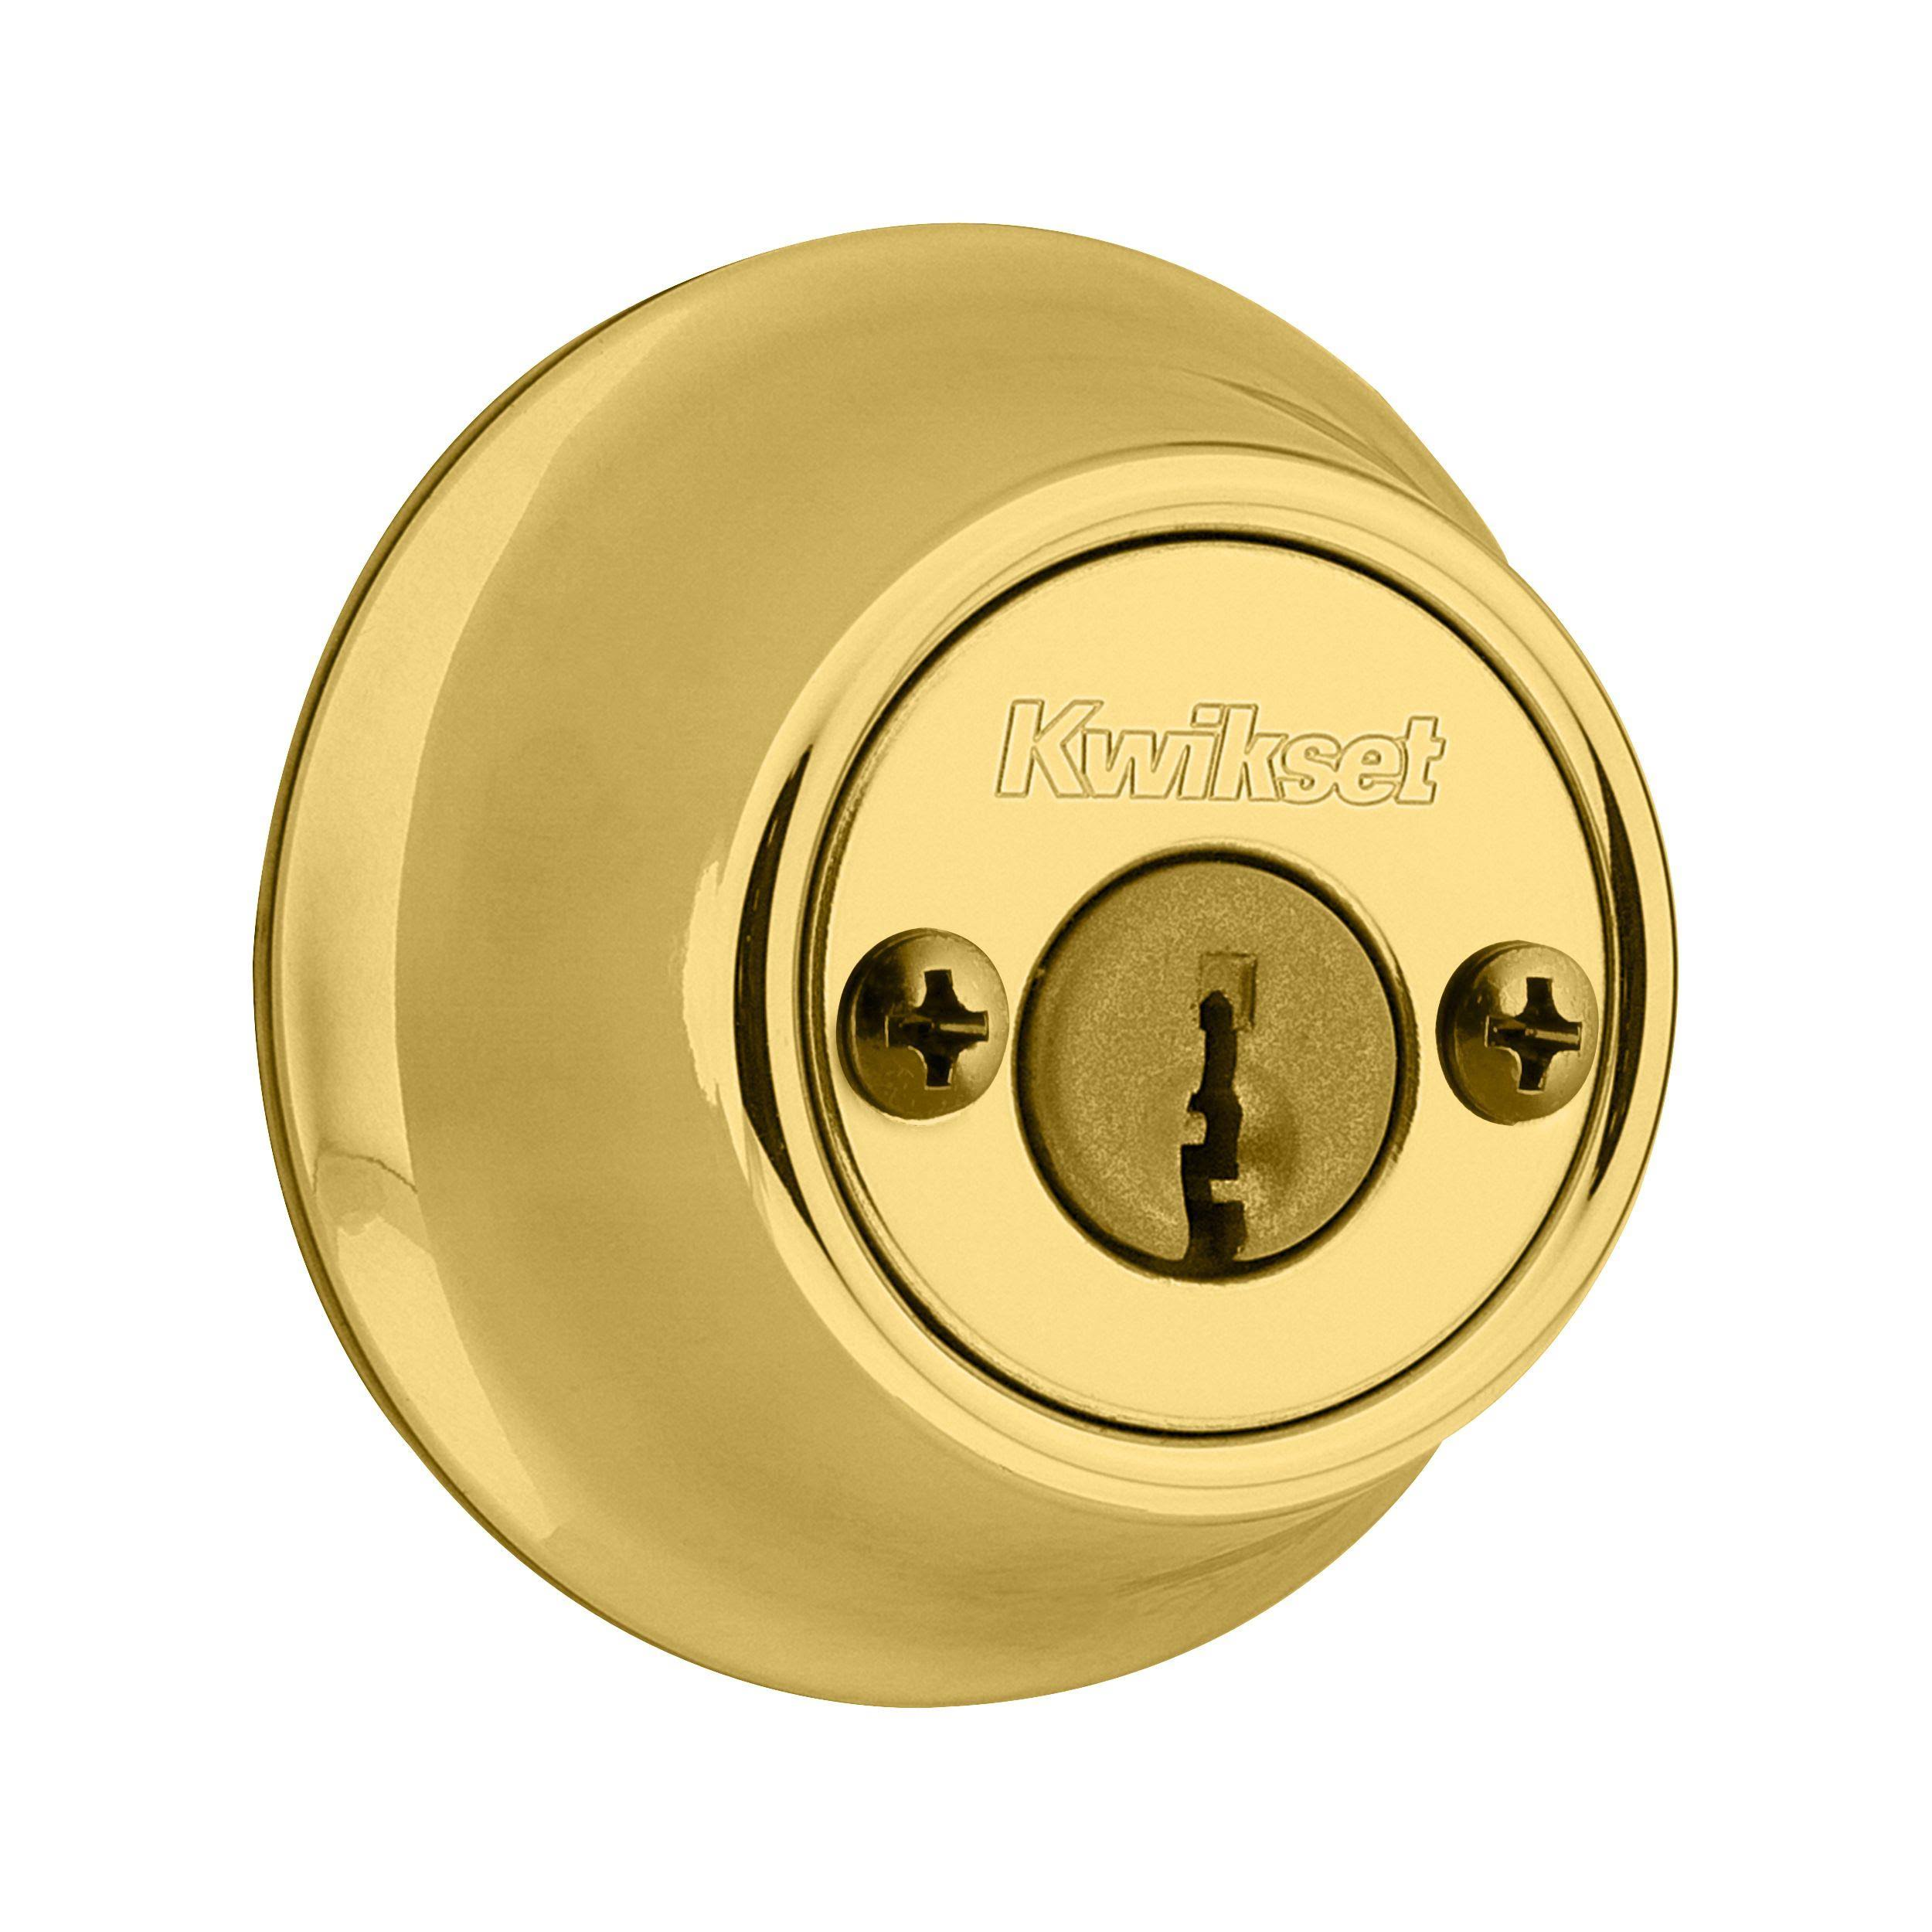 Kwikset 665 Double Cylinder Deadbolt - Polished Brass